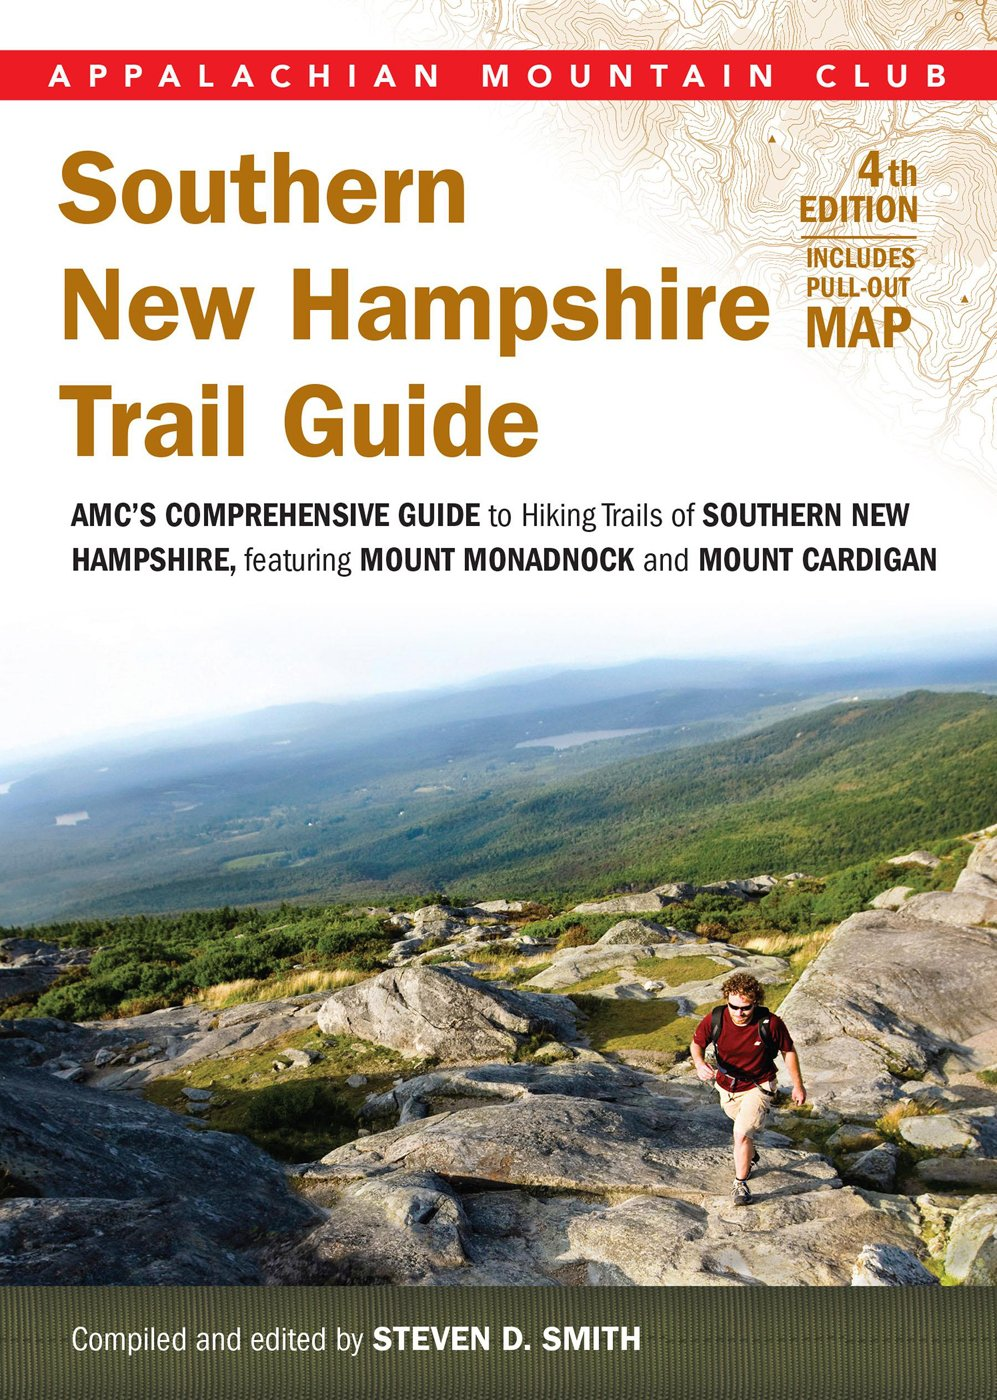 new hampshire hiking maps Southern New Hampshire Trail Guide Amc S Comprehensive Guide To new hampshire hiking maps